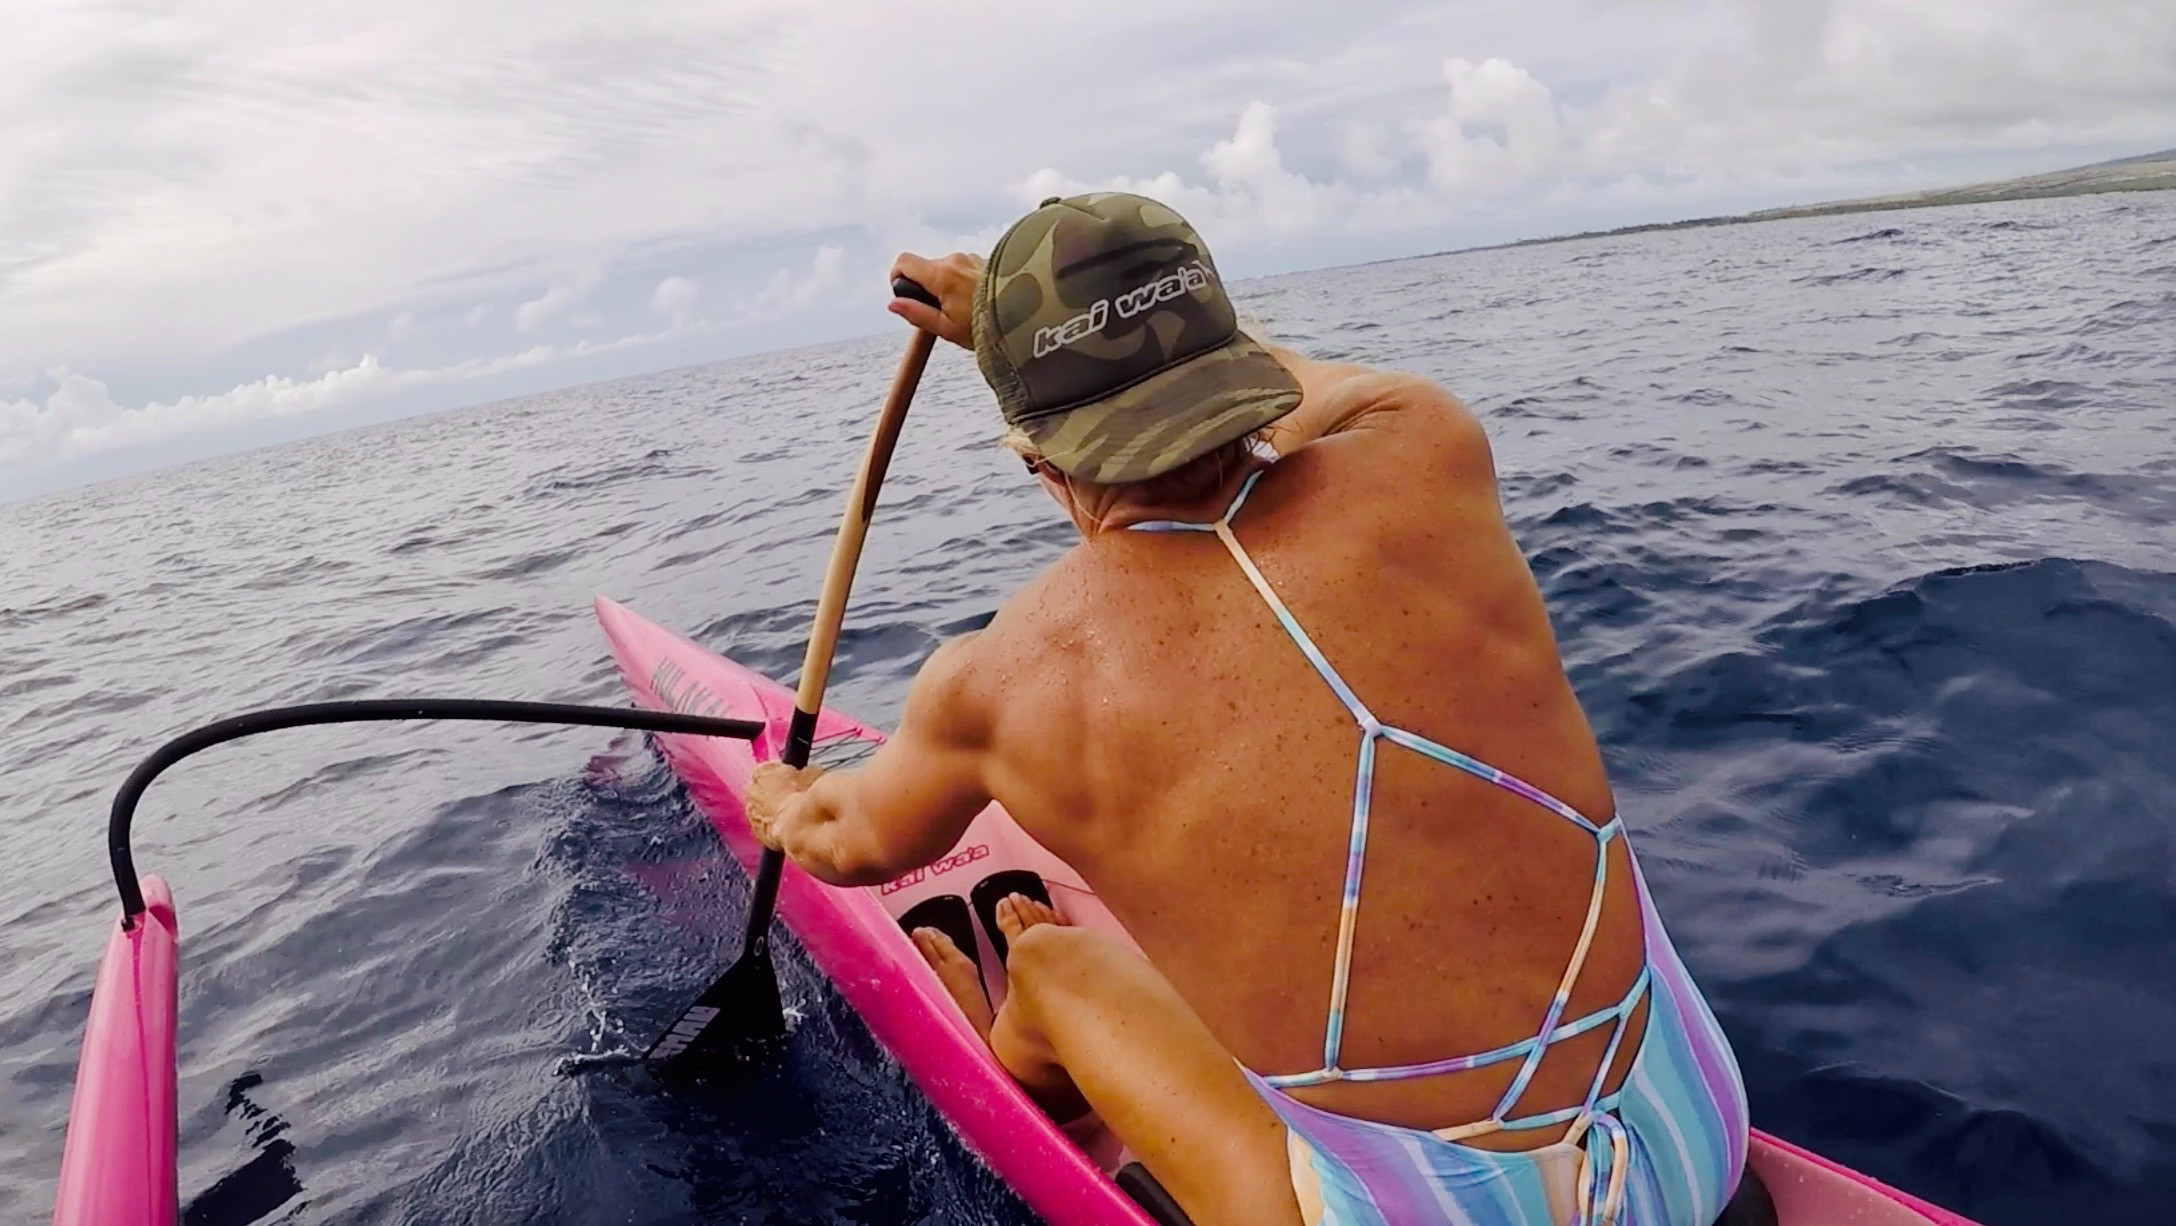 Outrigger Canoe One on One Lesson